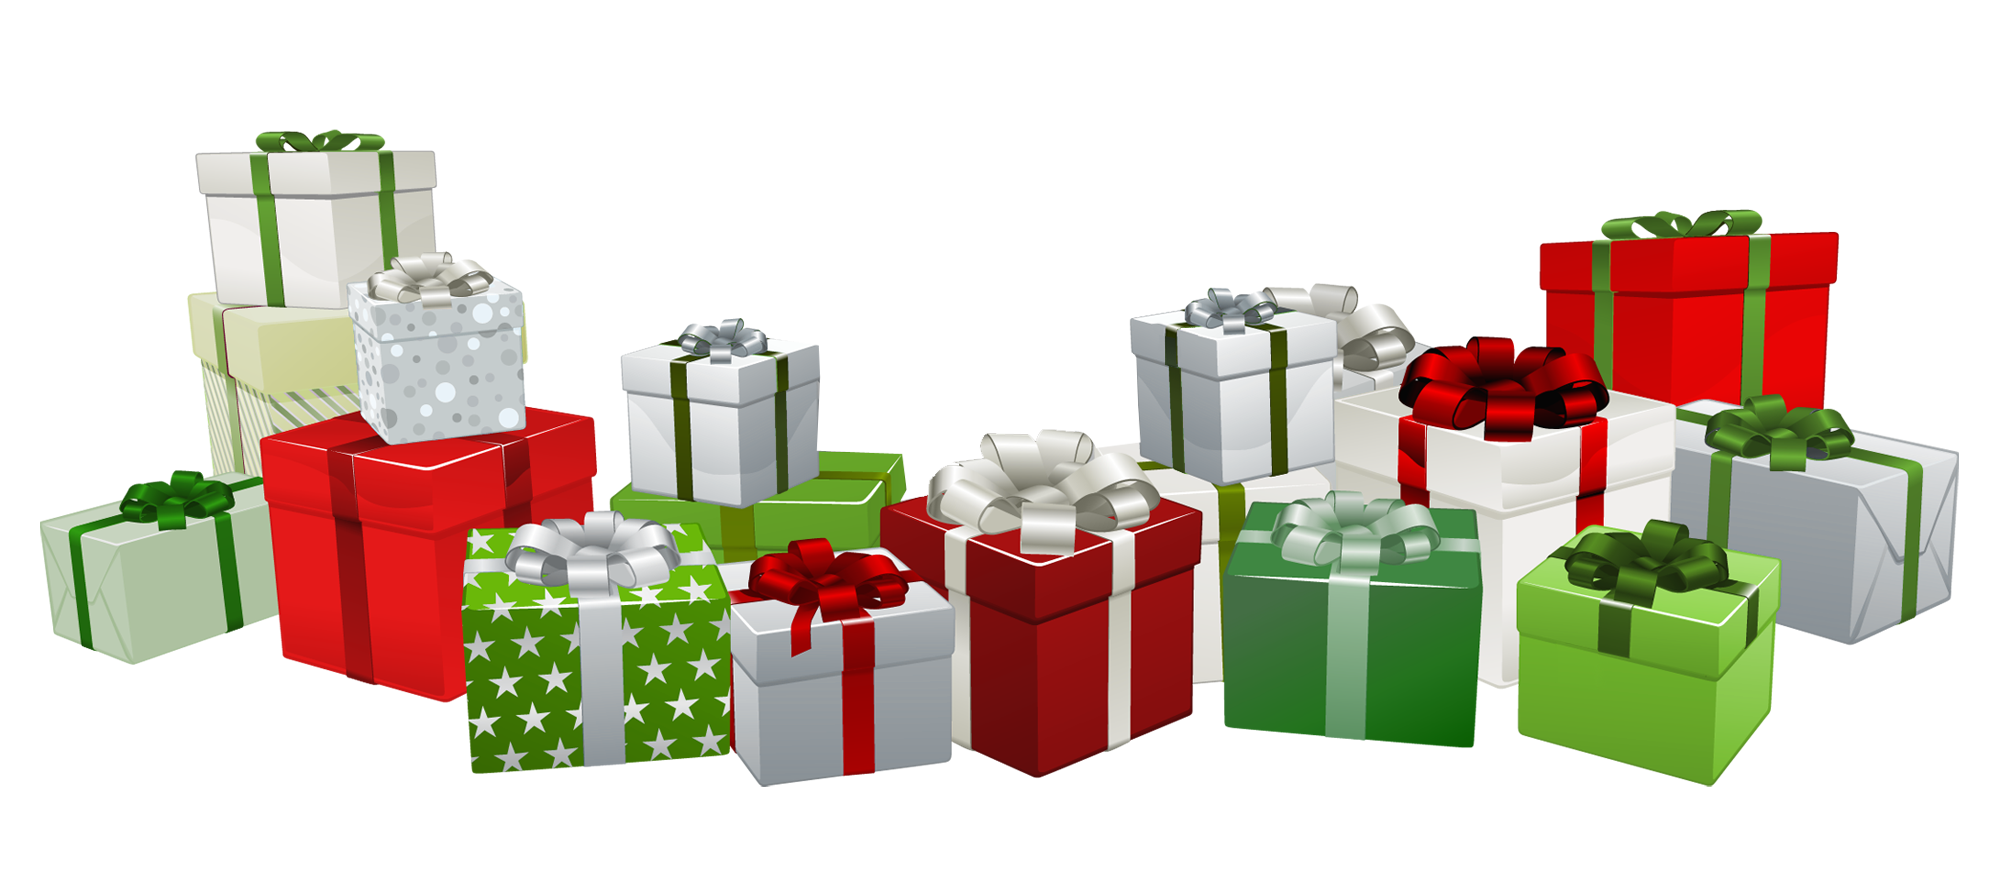 Free transparent santa christmas presents tower clipart clipart free Download Gift Claus Transparent Presents Santa Christmas Clipart PNG ... clipart free